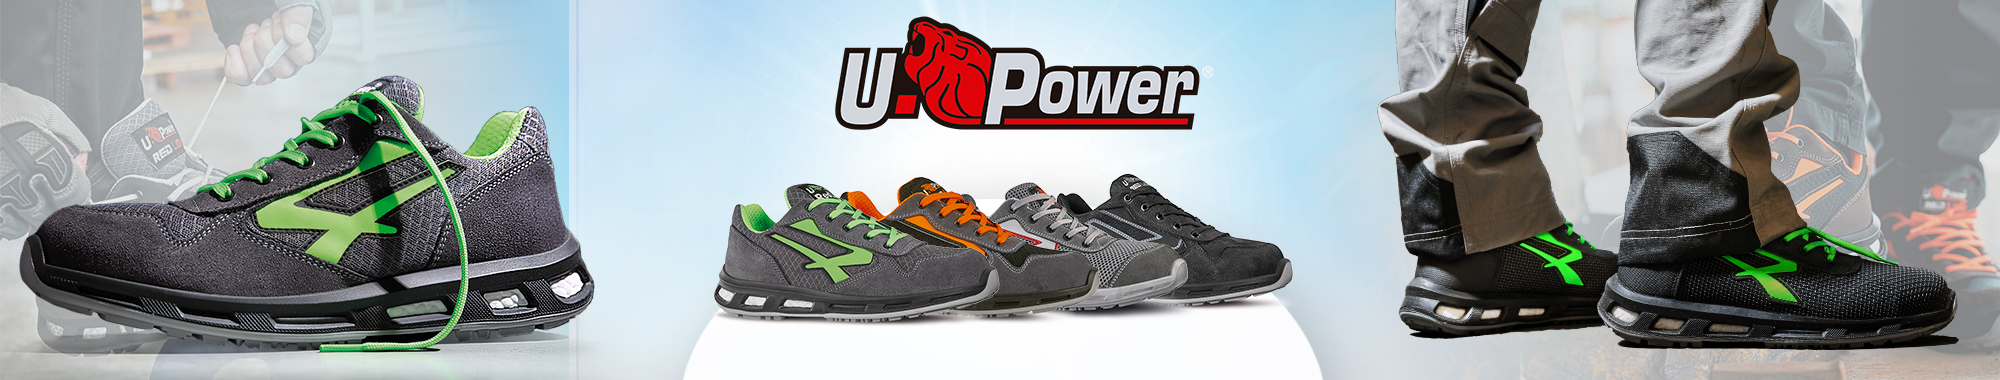 Calzado U-Power